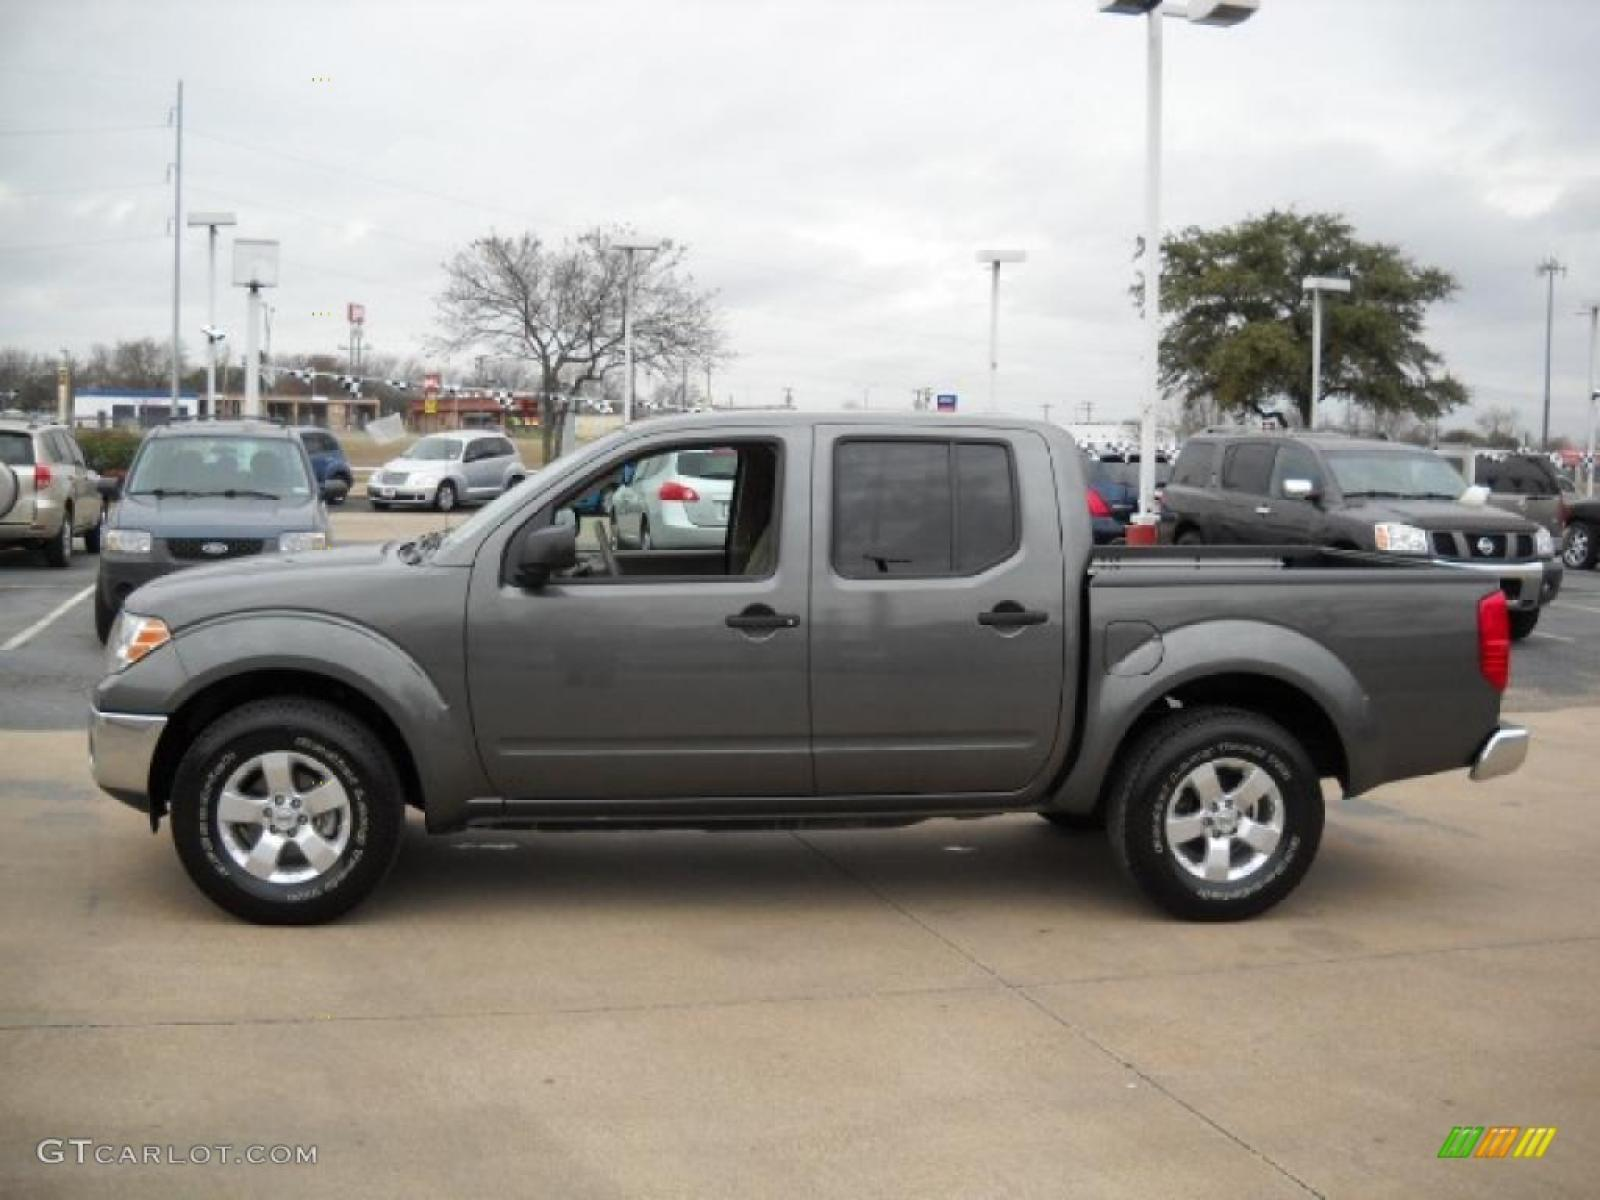 2009 nissan frontier information and photos zombiedrive. Black Bedroom Furniture Sets. Home Design Ideas